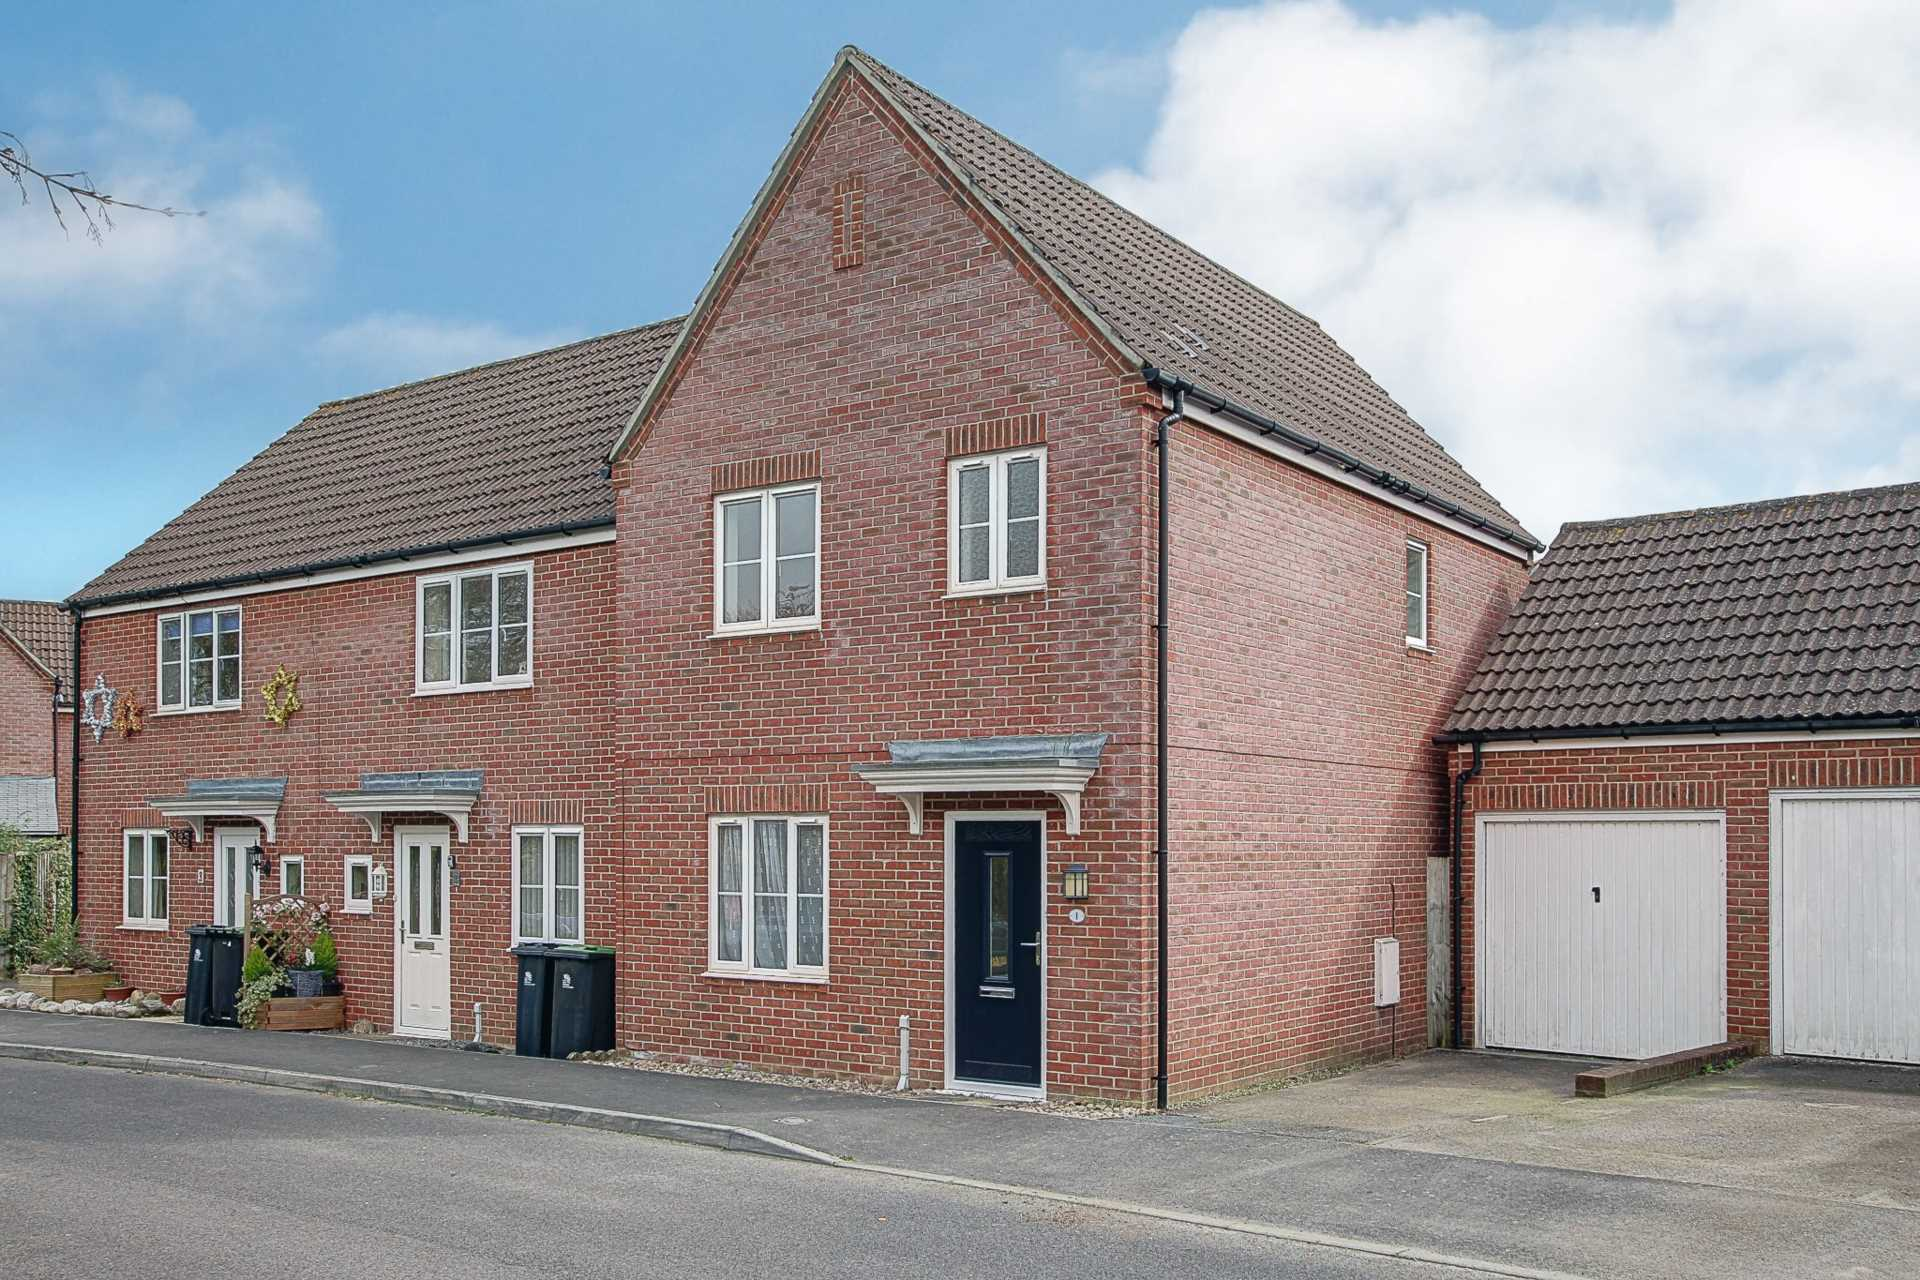 3 bed end of terrace house to rent in Chivrick Close, Sturminster Newton - Property Image 1